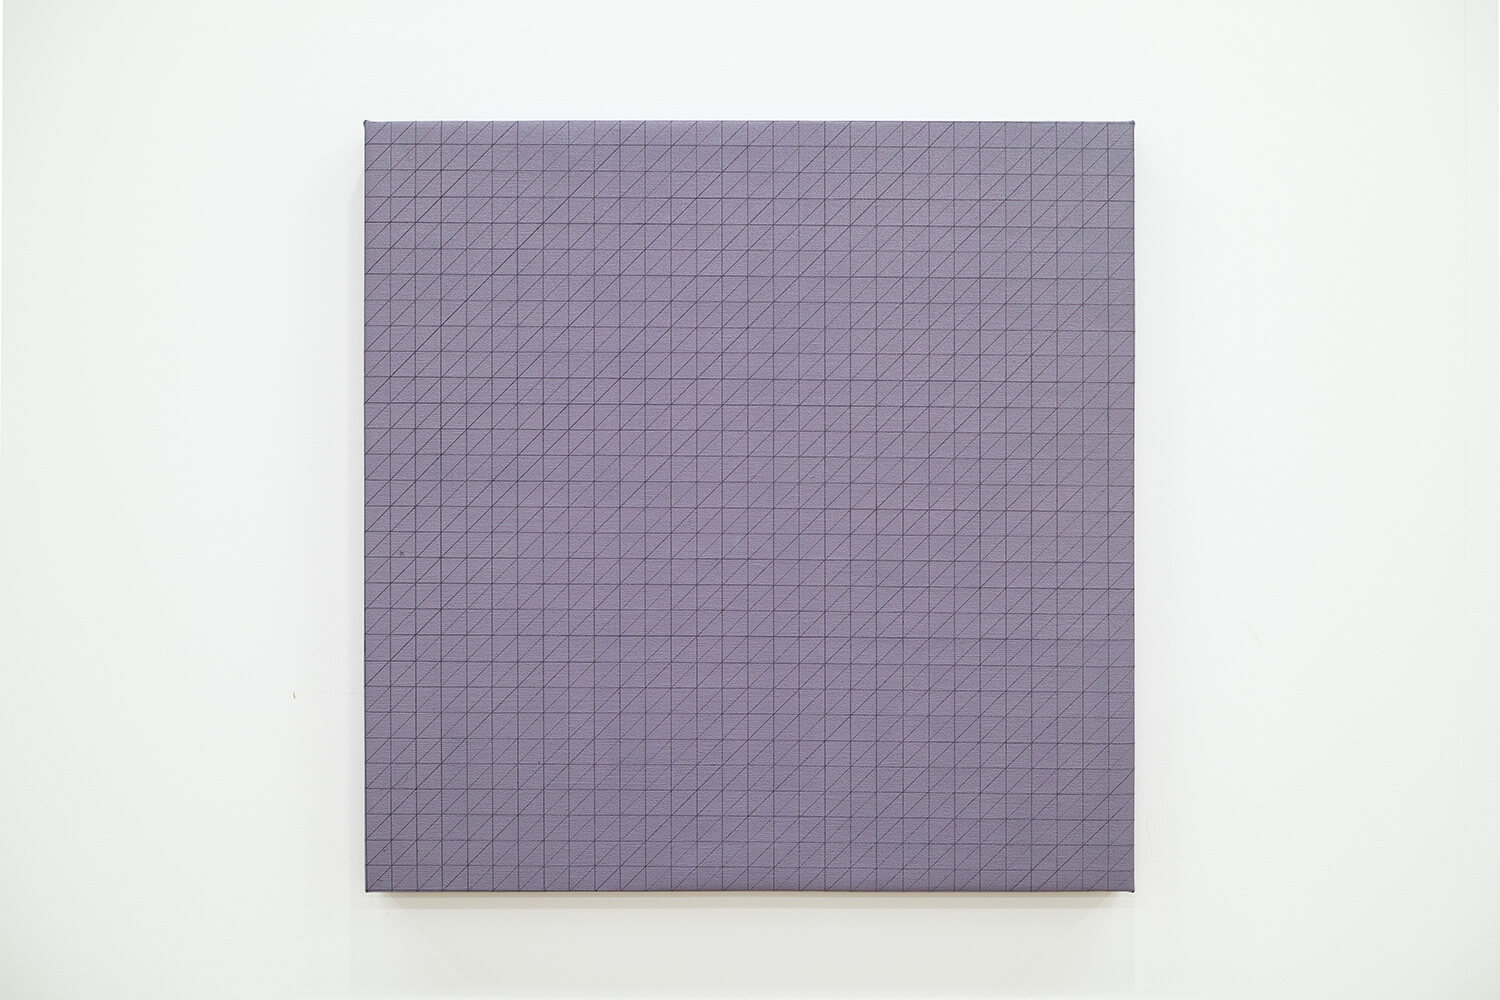 沢居曜子 untitled-Line oil on canvas 60 x 60 x4.5 cm 2014